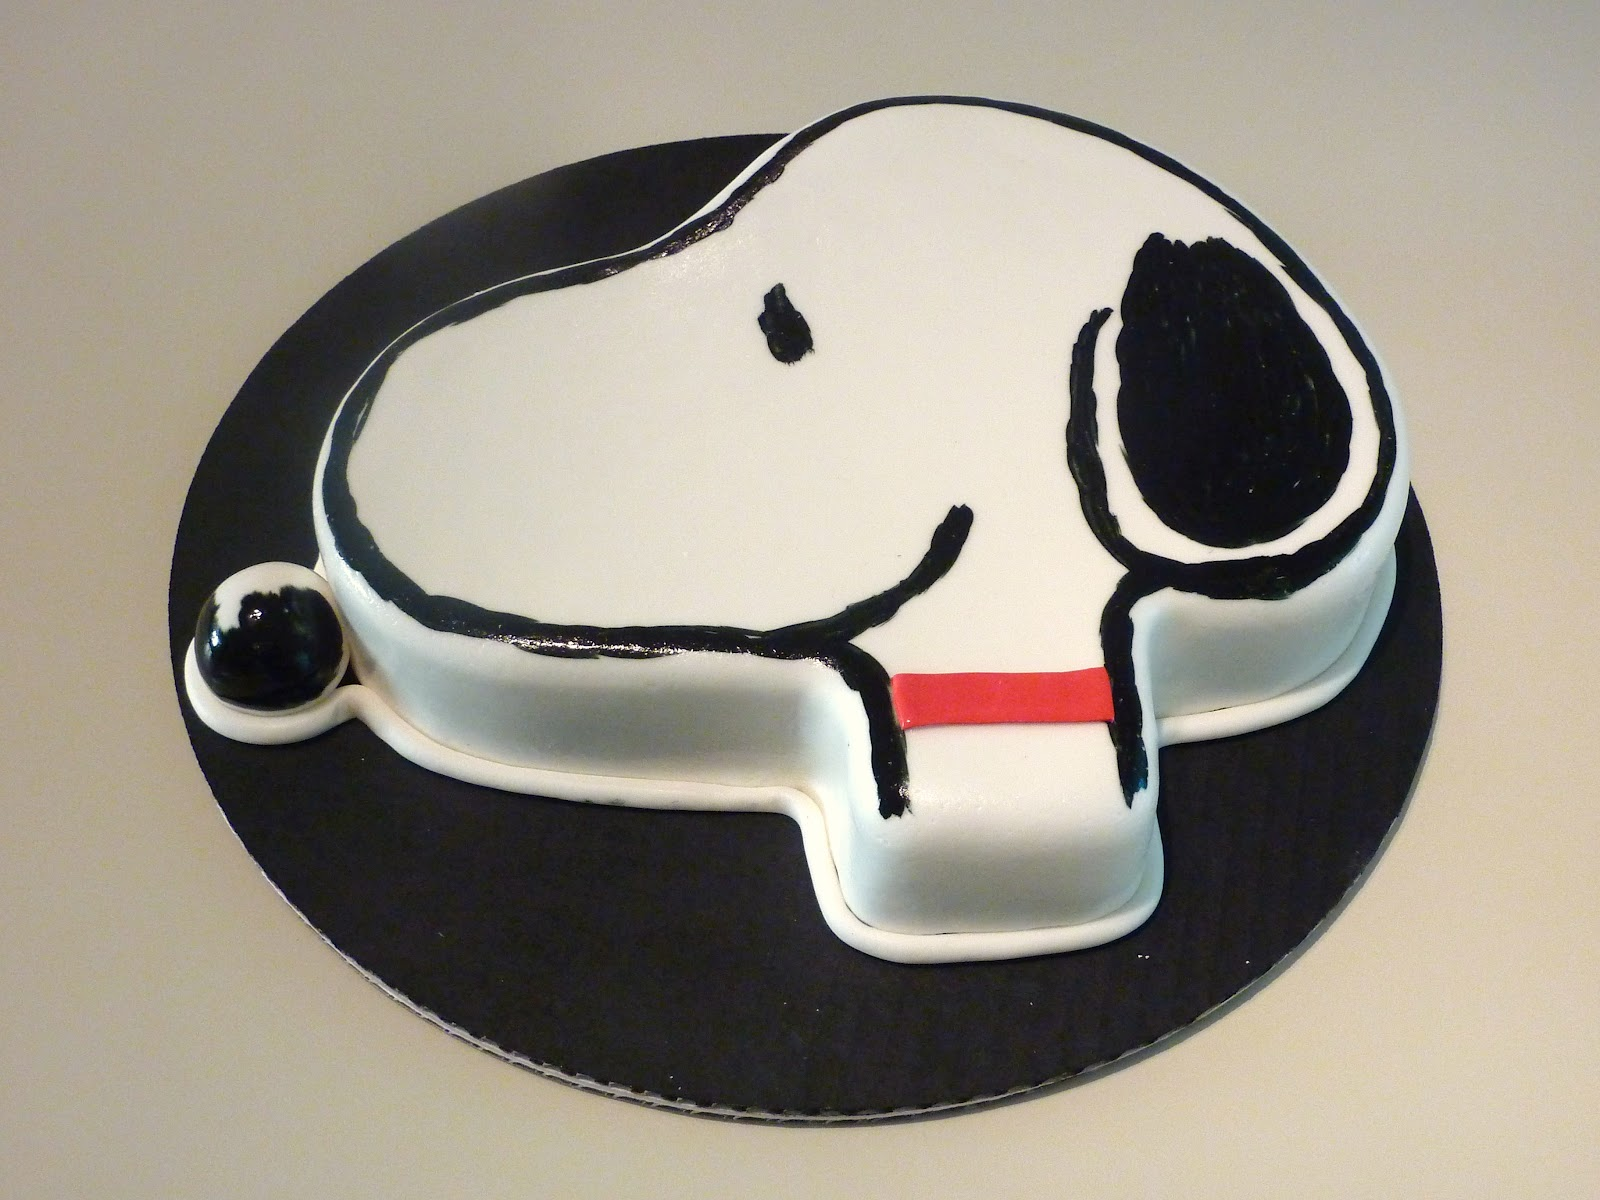 Snoopy Shaped Cake Pans